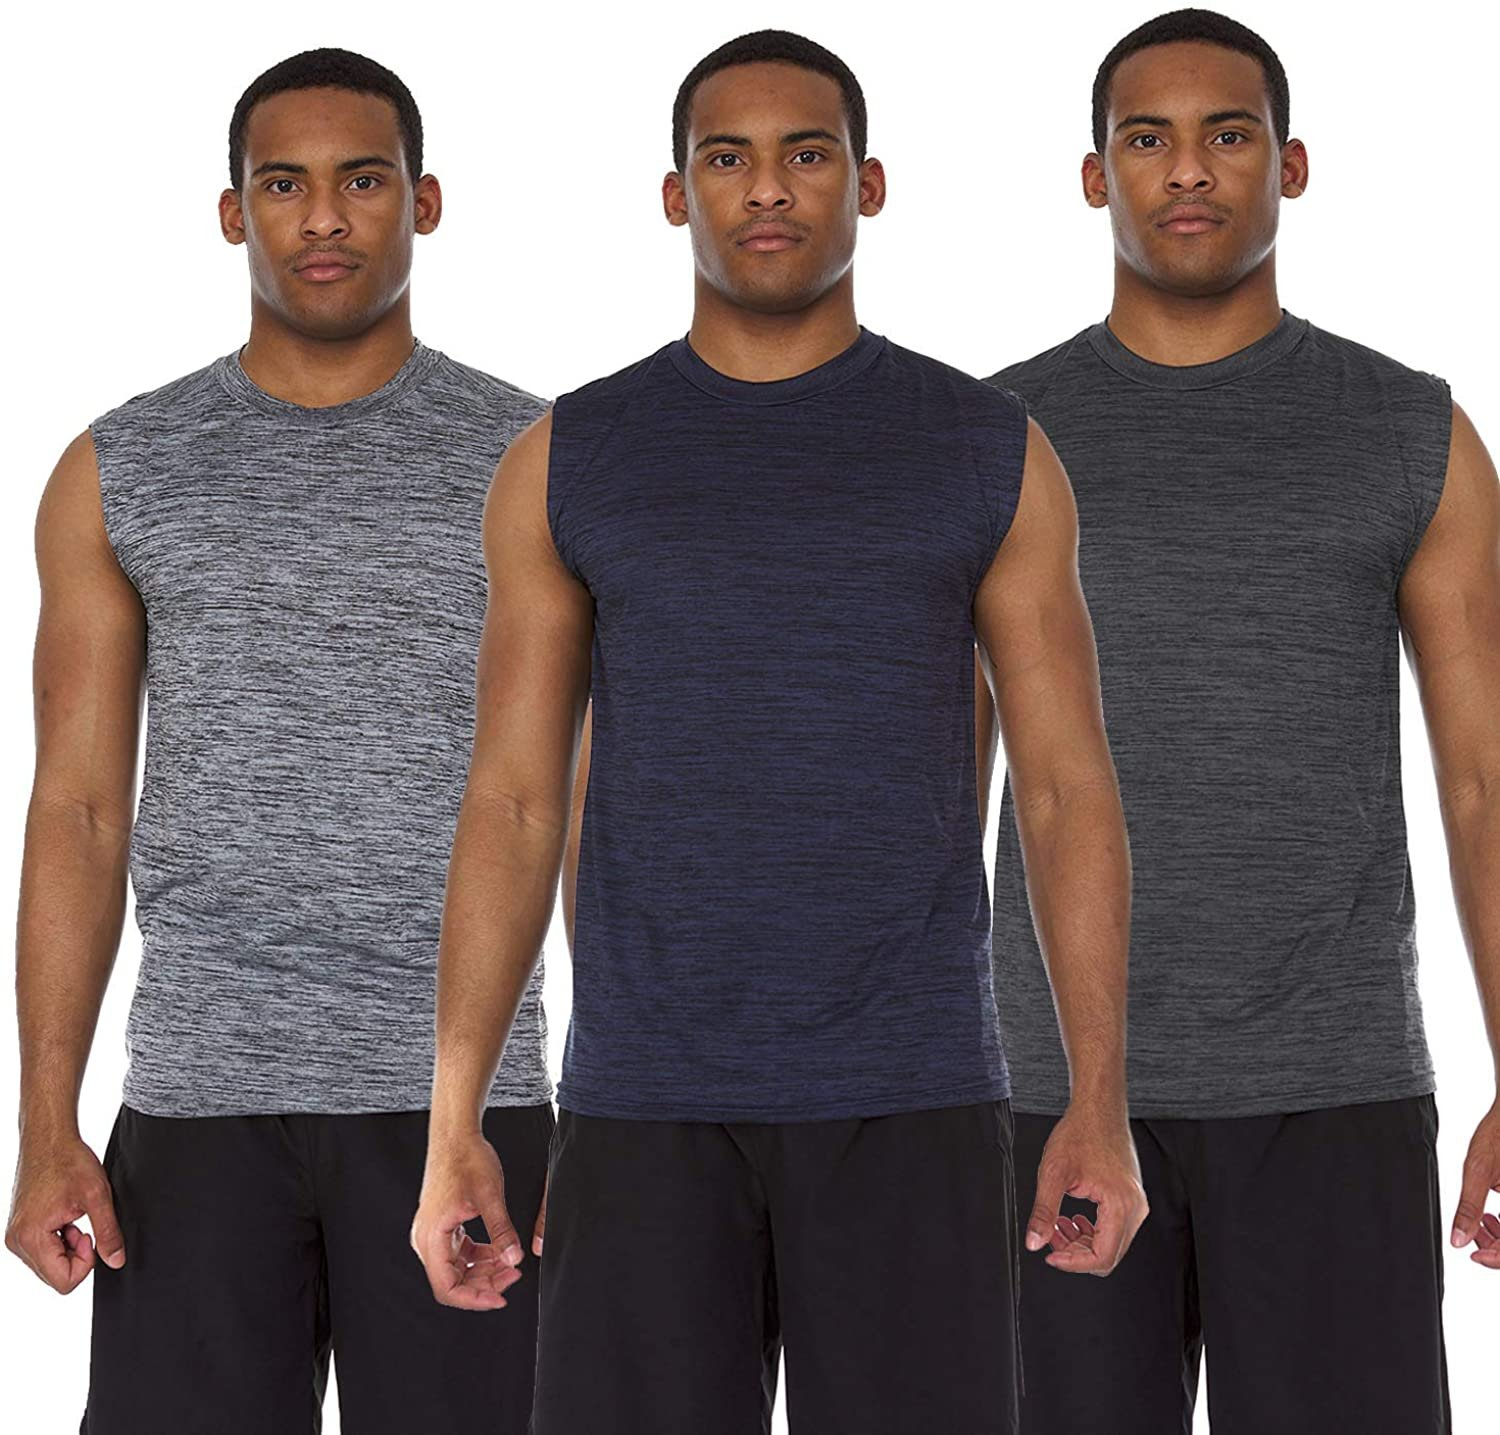 Men/'s Active Dry Fit Moisture Wicking Muscle Sleeveless Athletic... 6 Pack